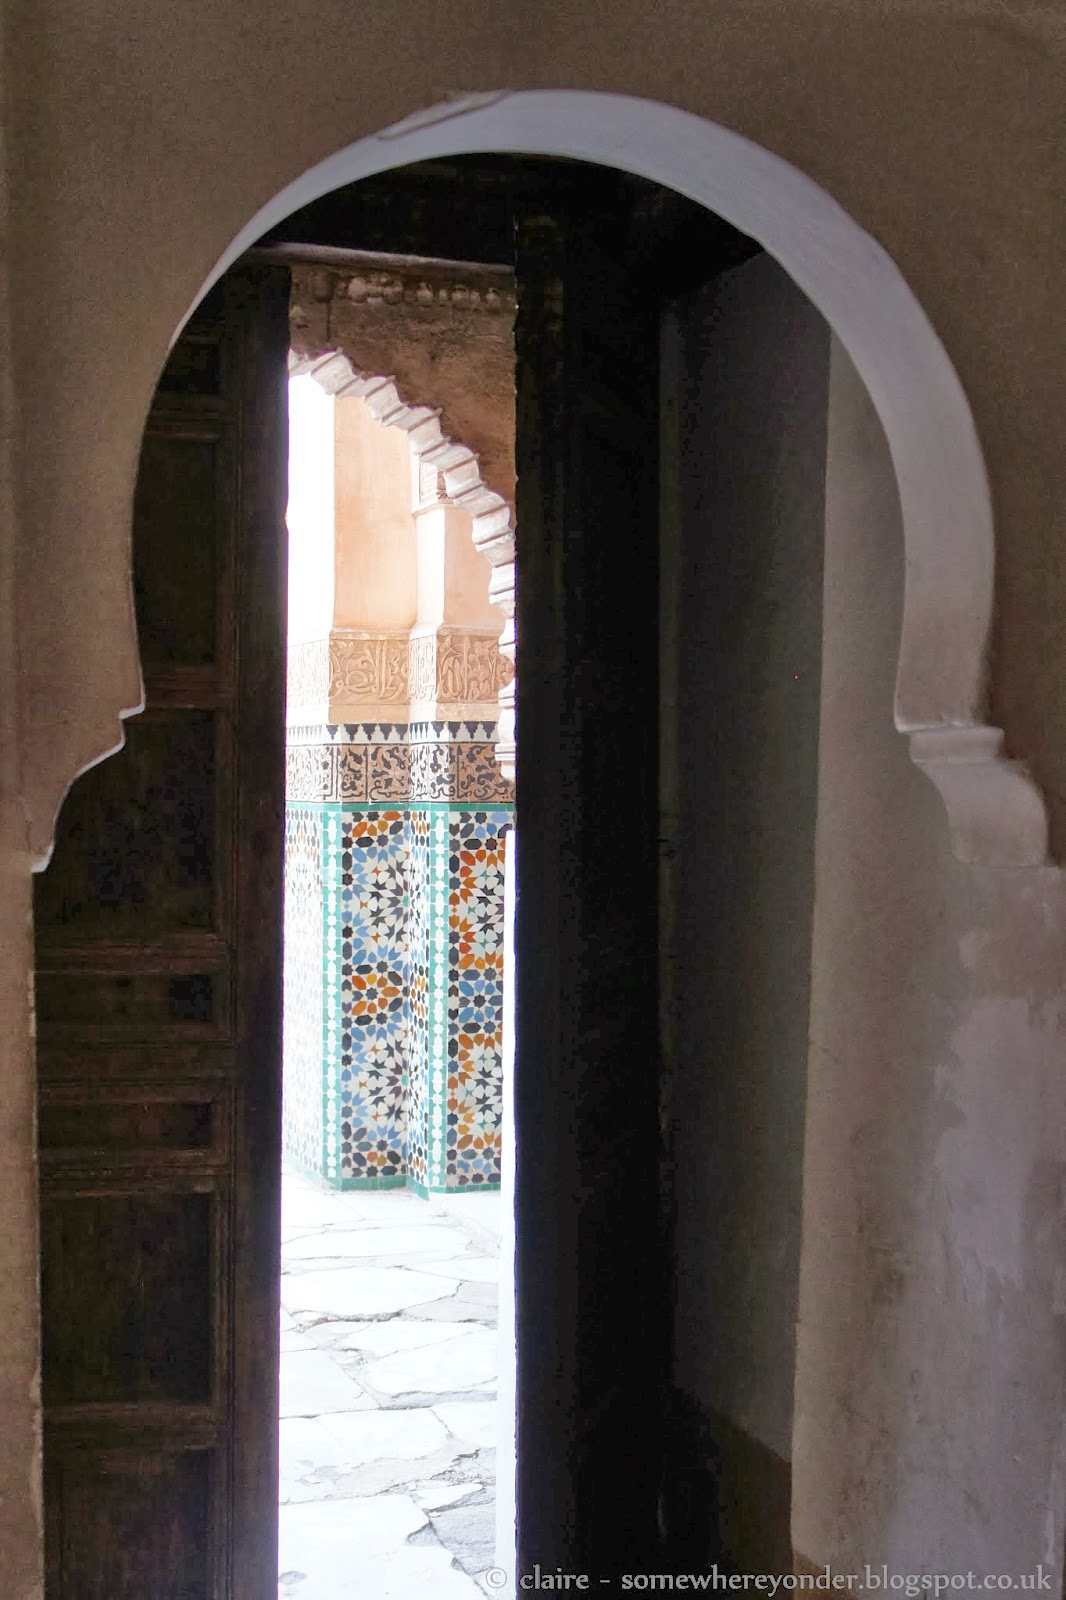 Open door and geometric patterns at Ben Youssef Madrasa, Marrakech